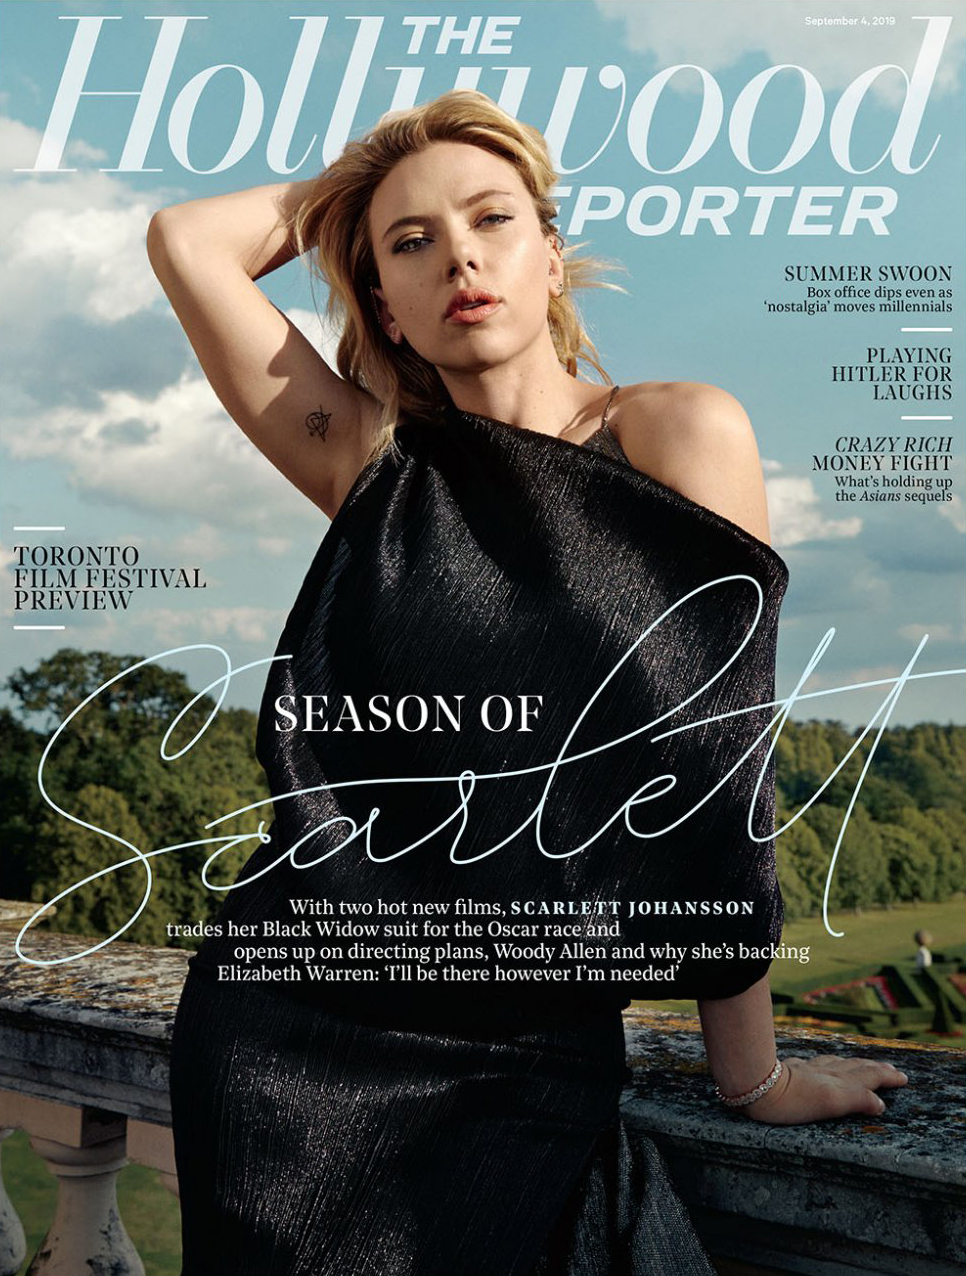 Scarlett-Johansson-talks-Woody-Allen-The-Hollywood-Reporter-cover